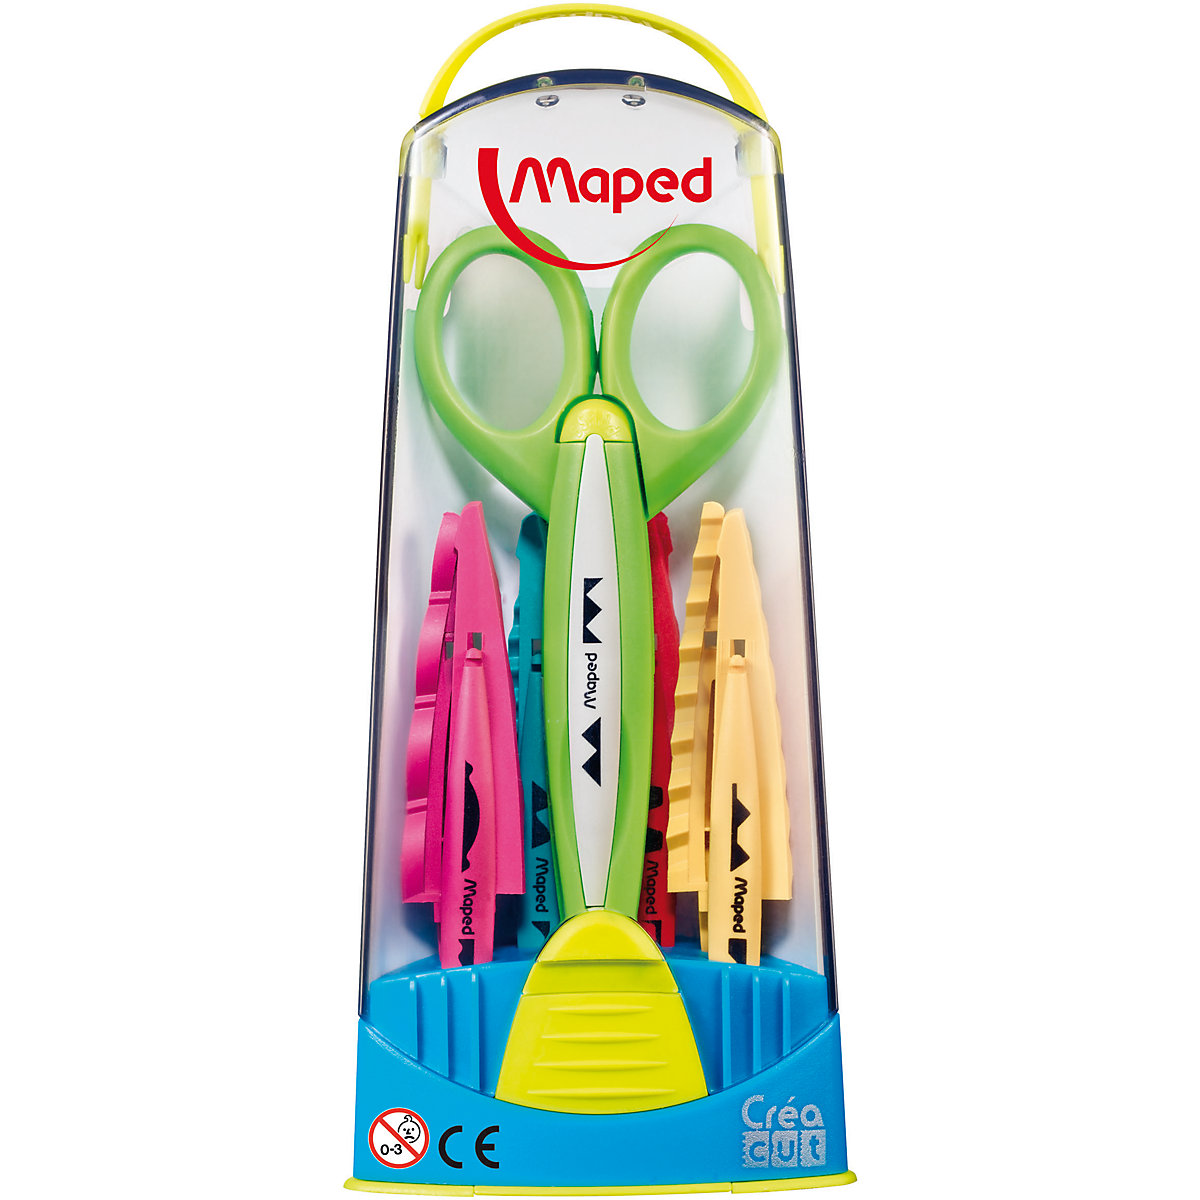 MAPED Scissors 7379380 Curly Office Scissor For School For Children For Boys And Girls MTpromo